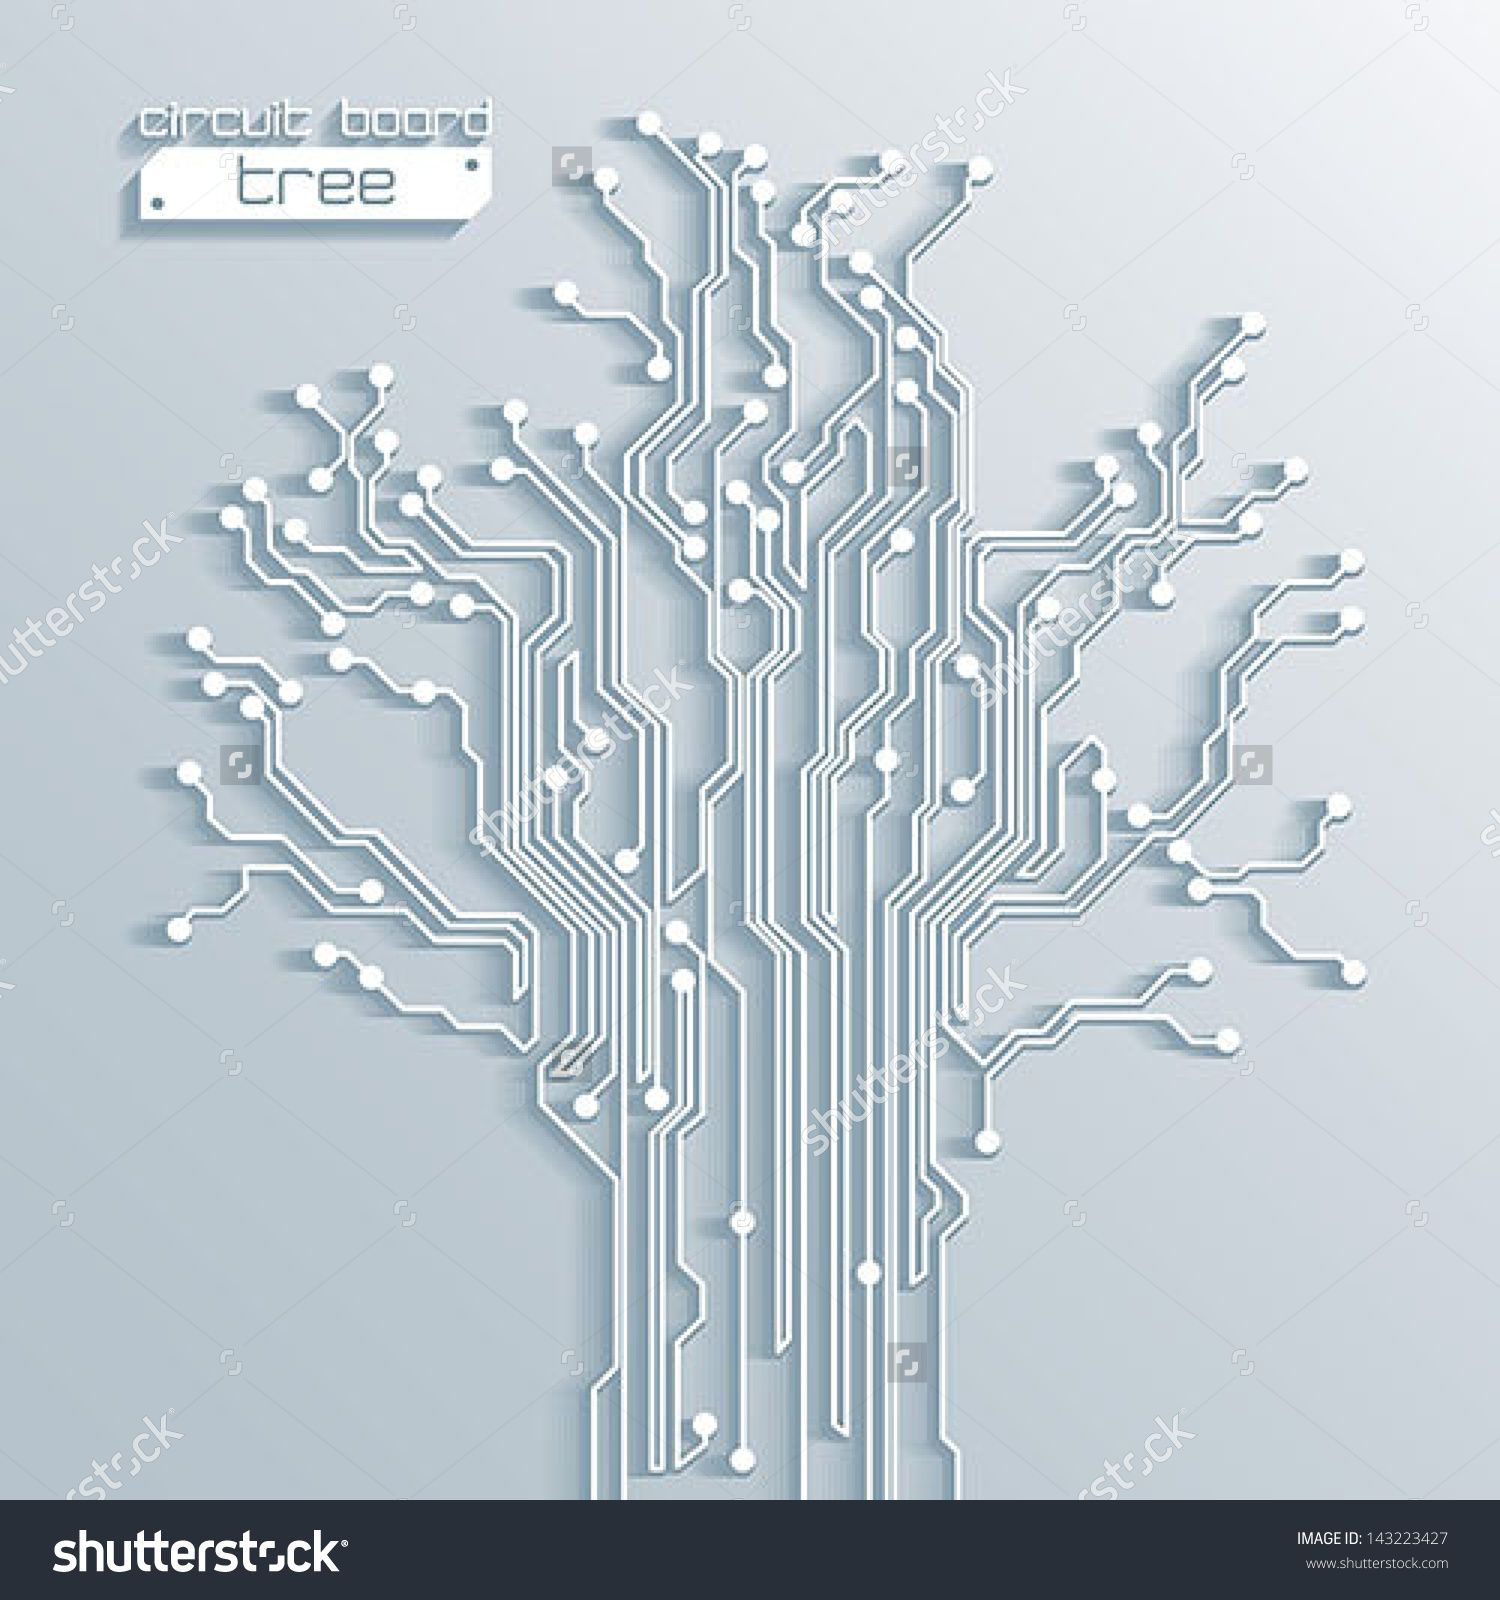 3d Tree Circuit Board Background Vector Creativecoding In 2019 Memory Chips A Cell Phone Royalty Free Stock Photo Image